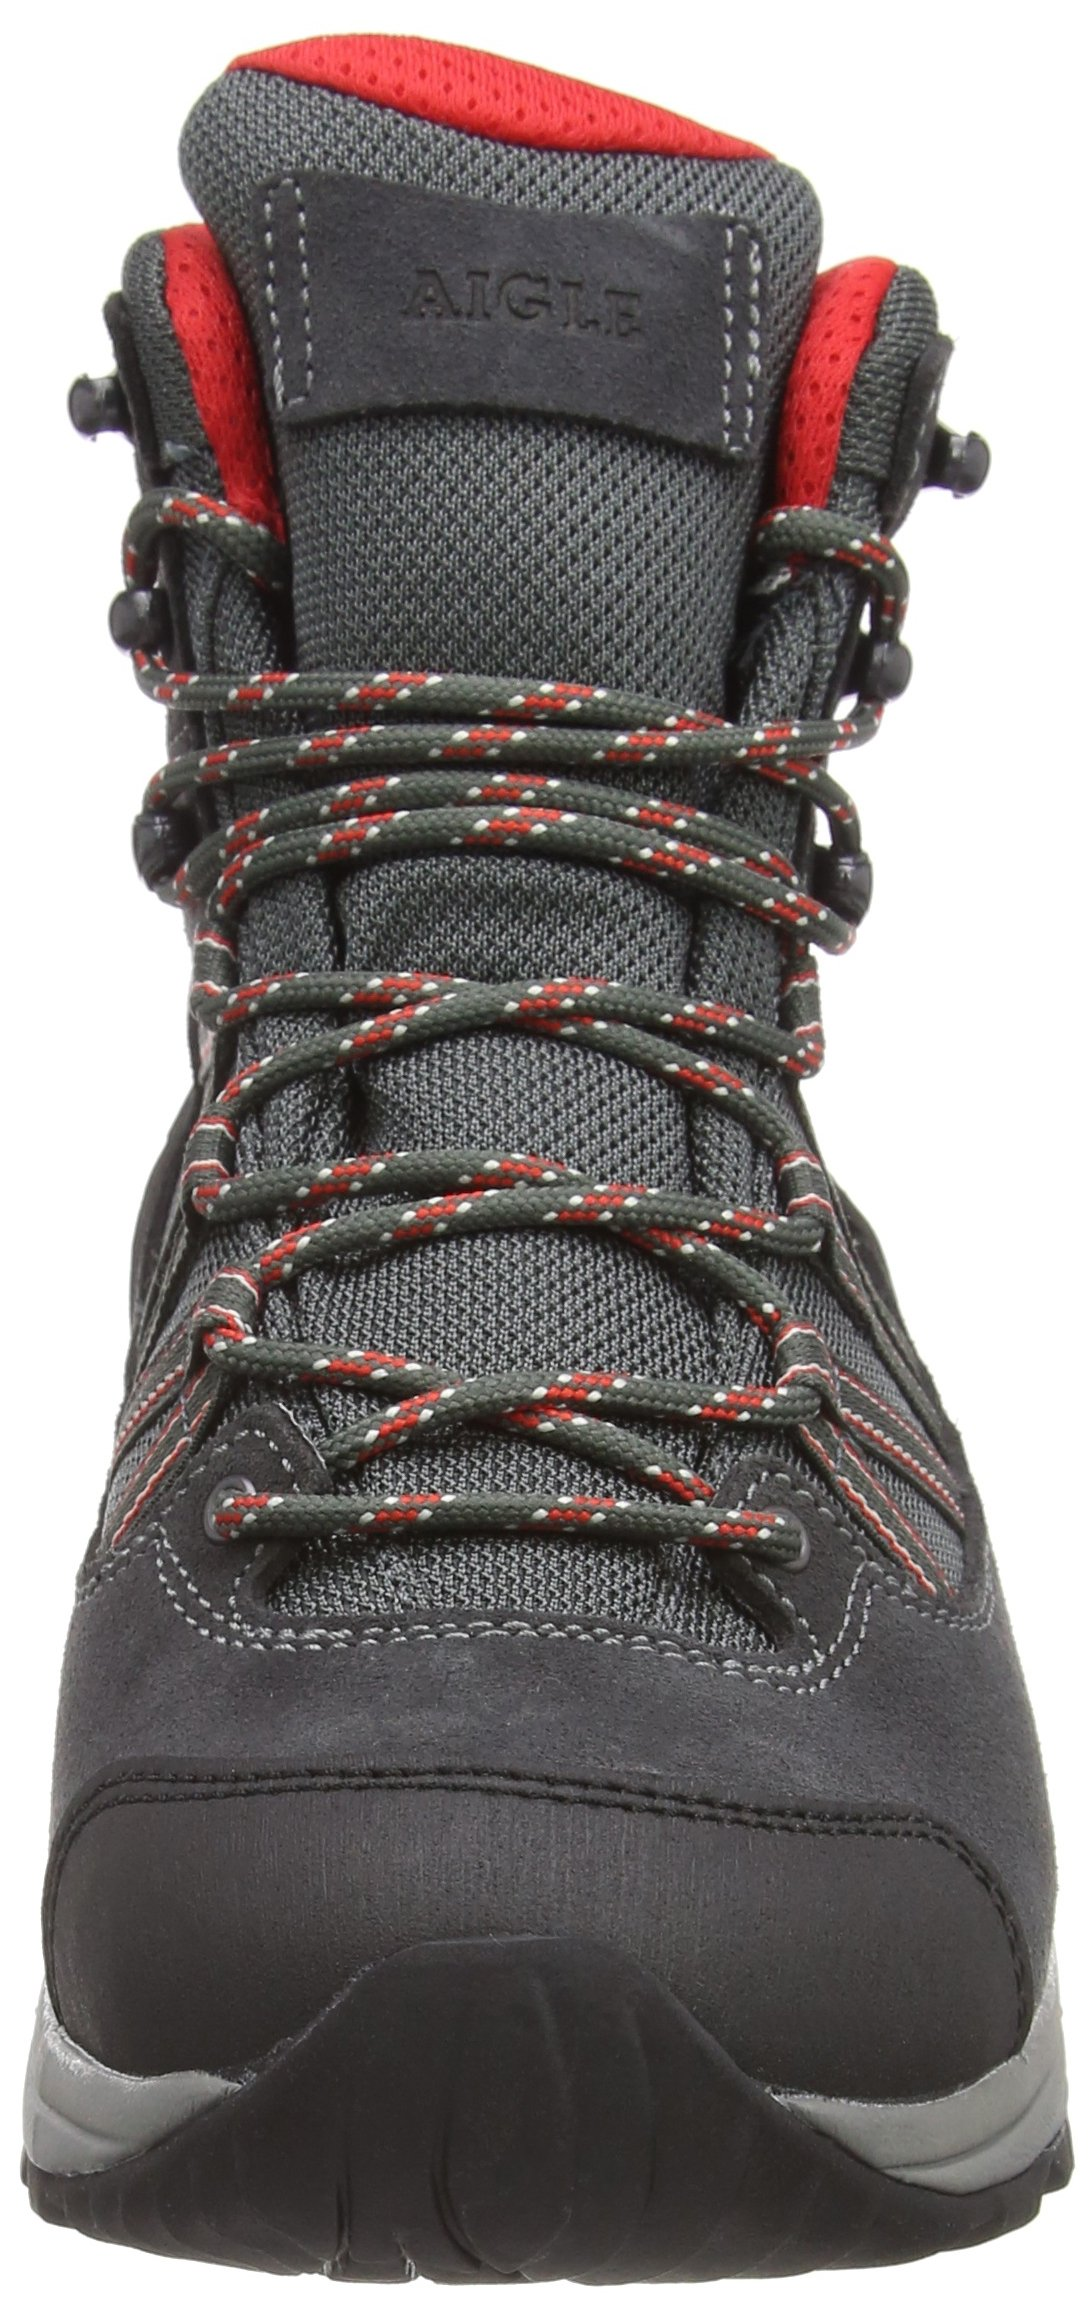 f533a431bdc Aigle Men's Mooven Mid Gore-tex High Rise Hiking Shoes